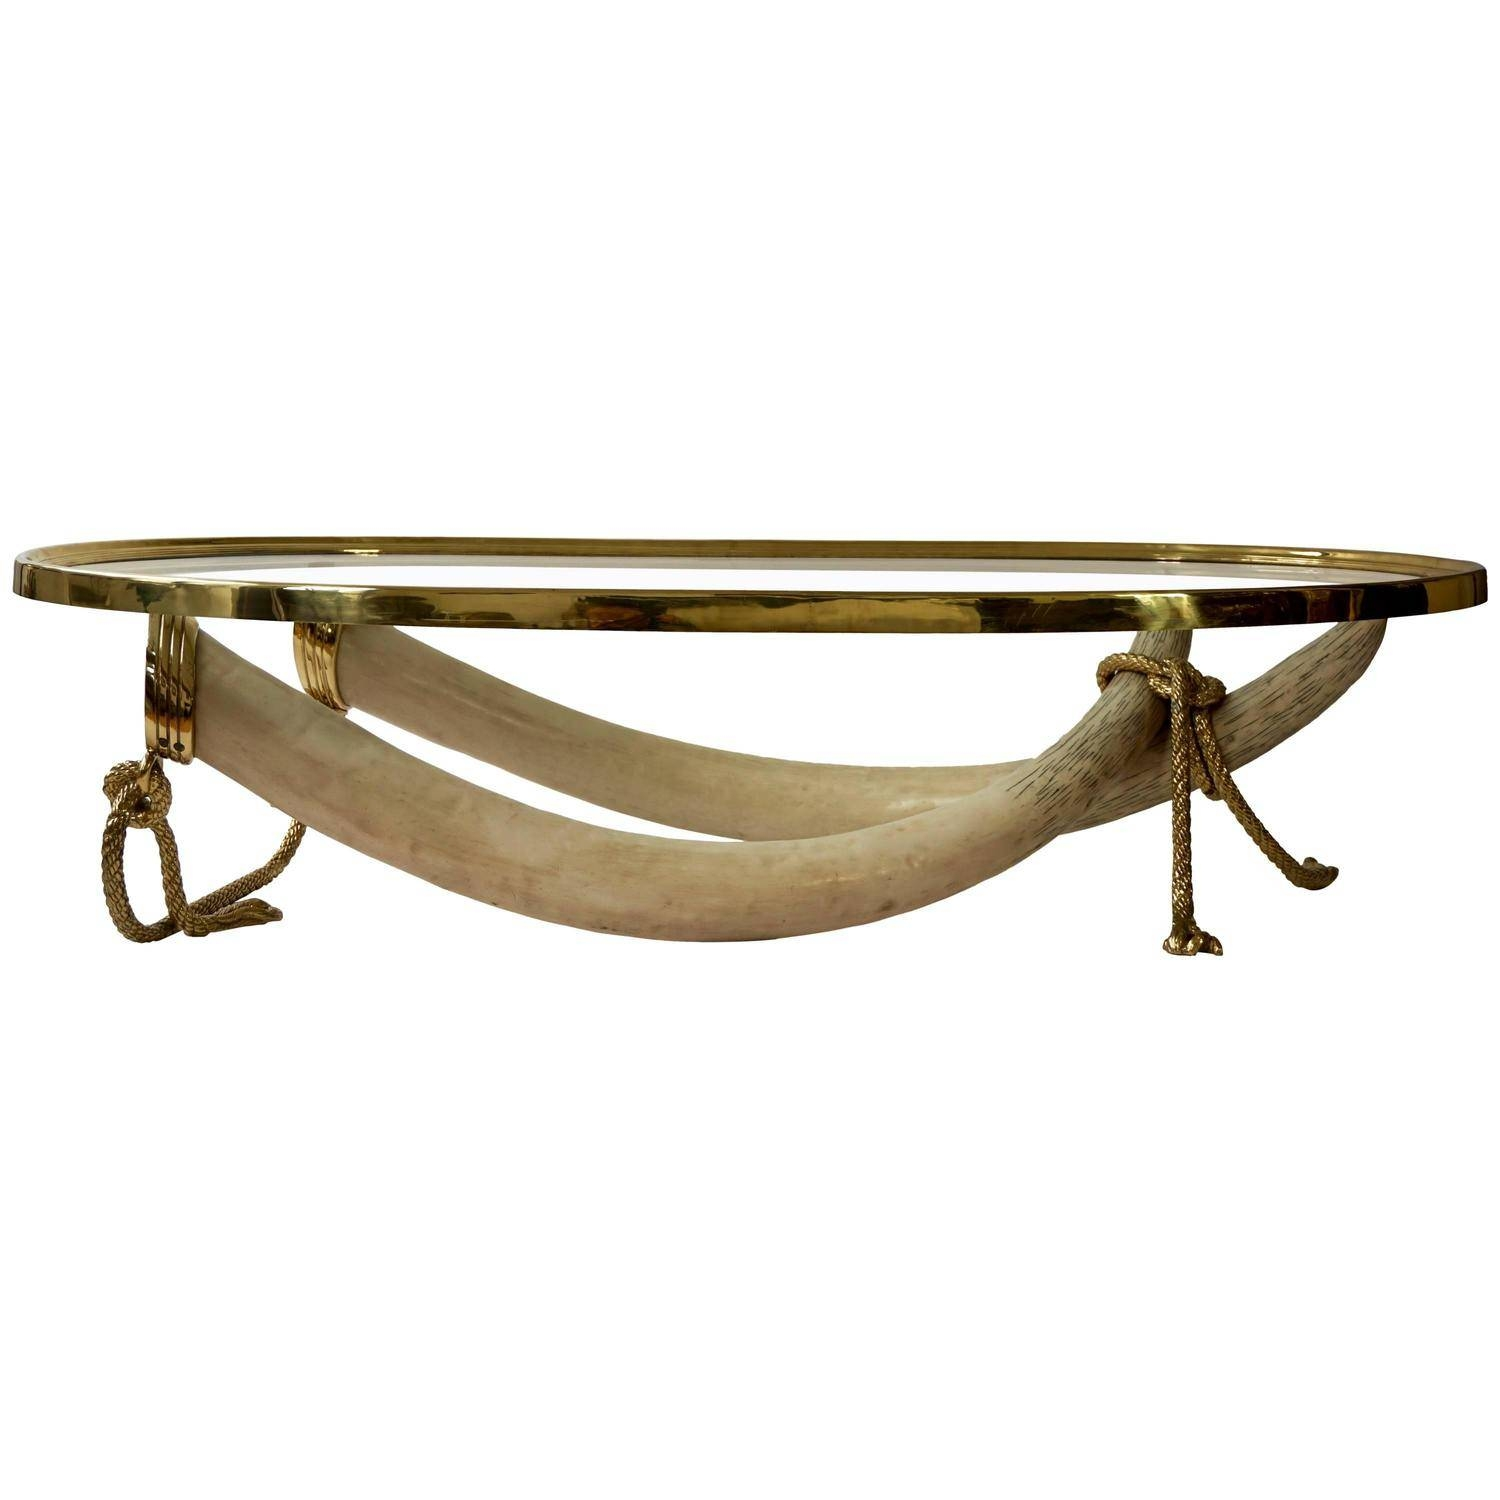 Huge Bronze And Brass Elephant Tusk Coffee Tableitalo Valenti throughout Elephant Coffee Tables (Image 23 of 30)